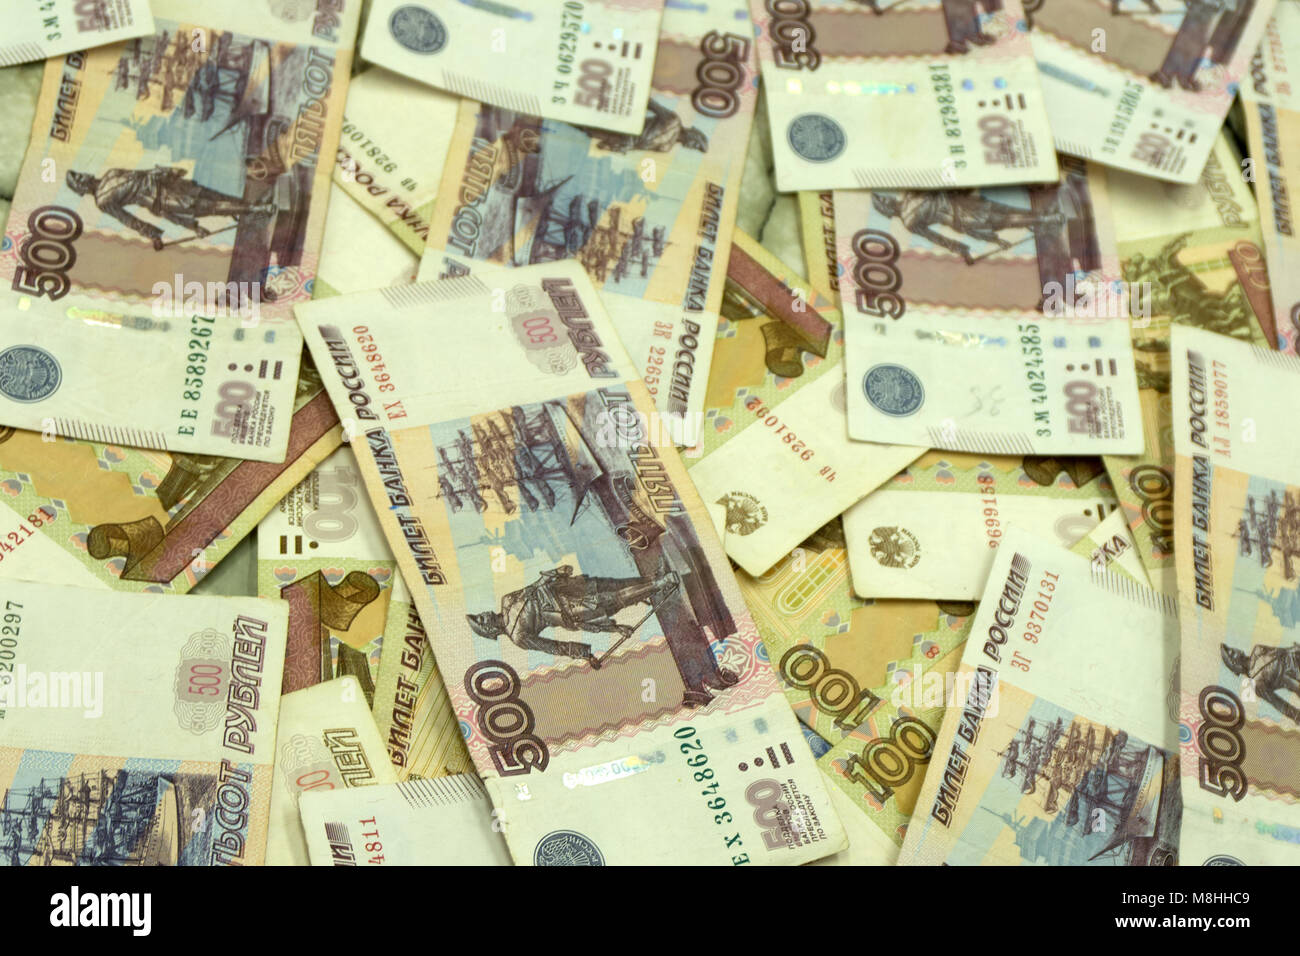 Background of five hundredth bills of Russian banknotes thousands - Stock Image